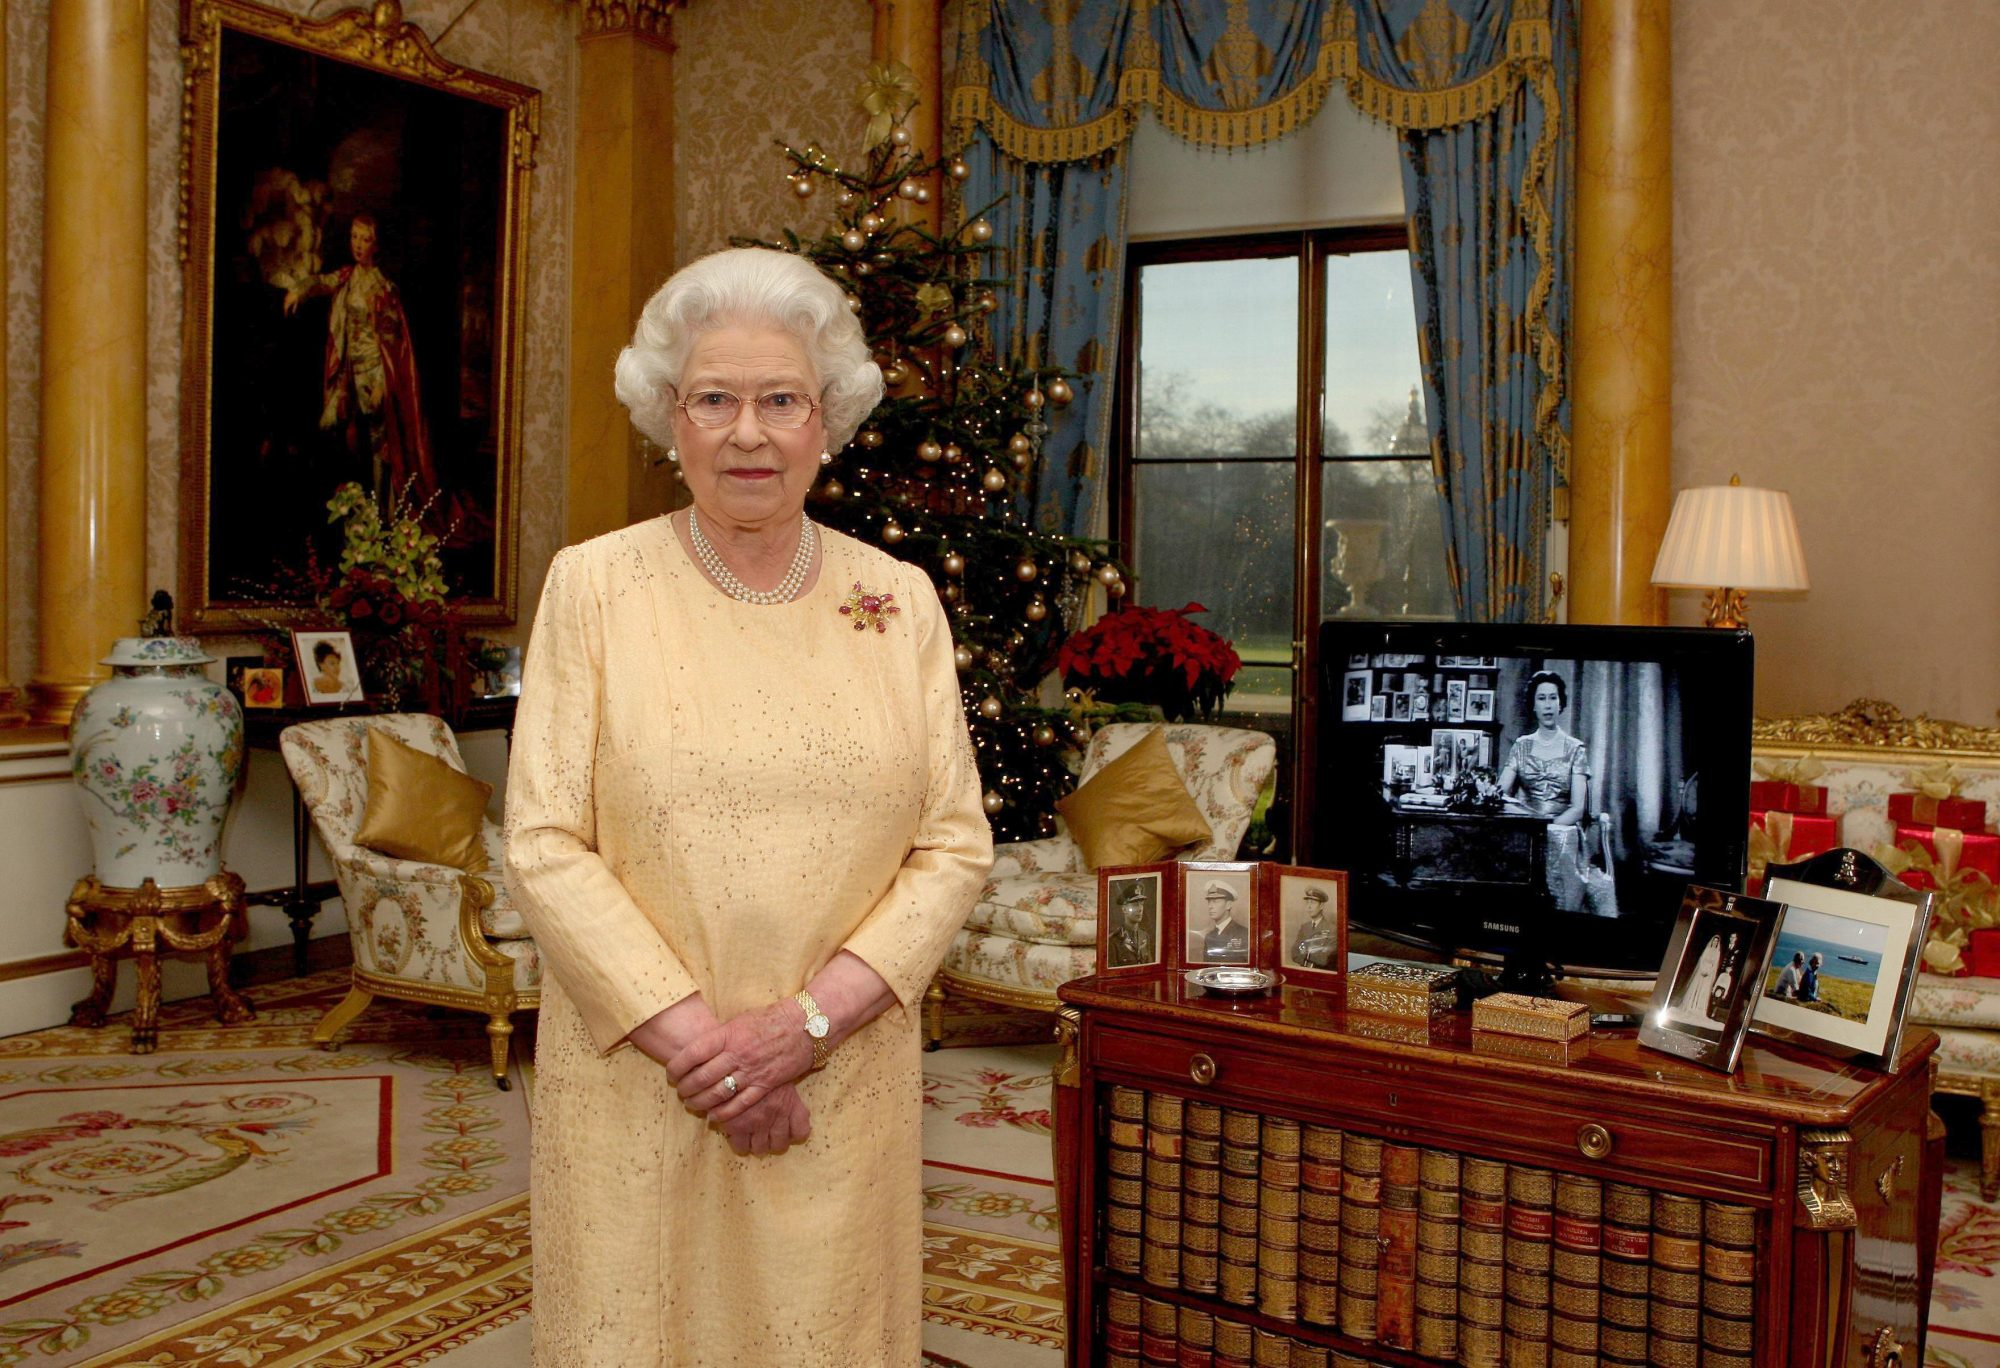 The Queen's 2007 Christmas Broadcast